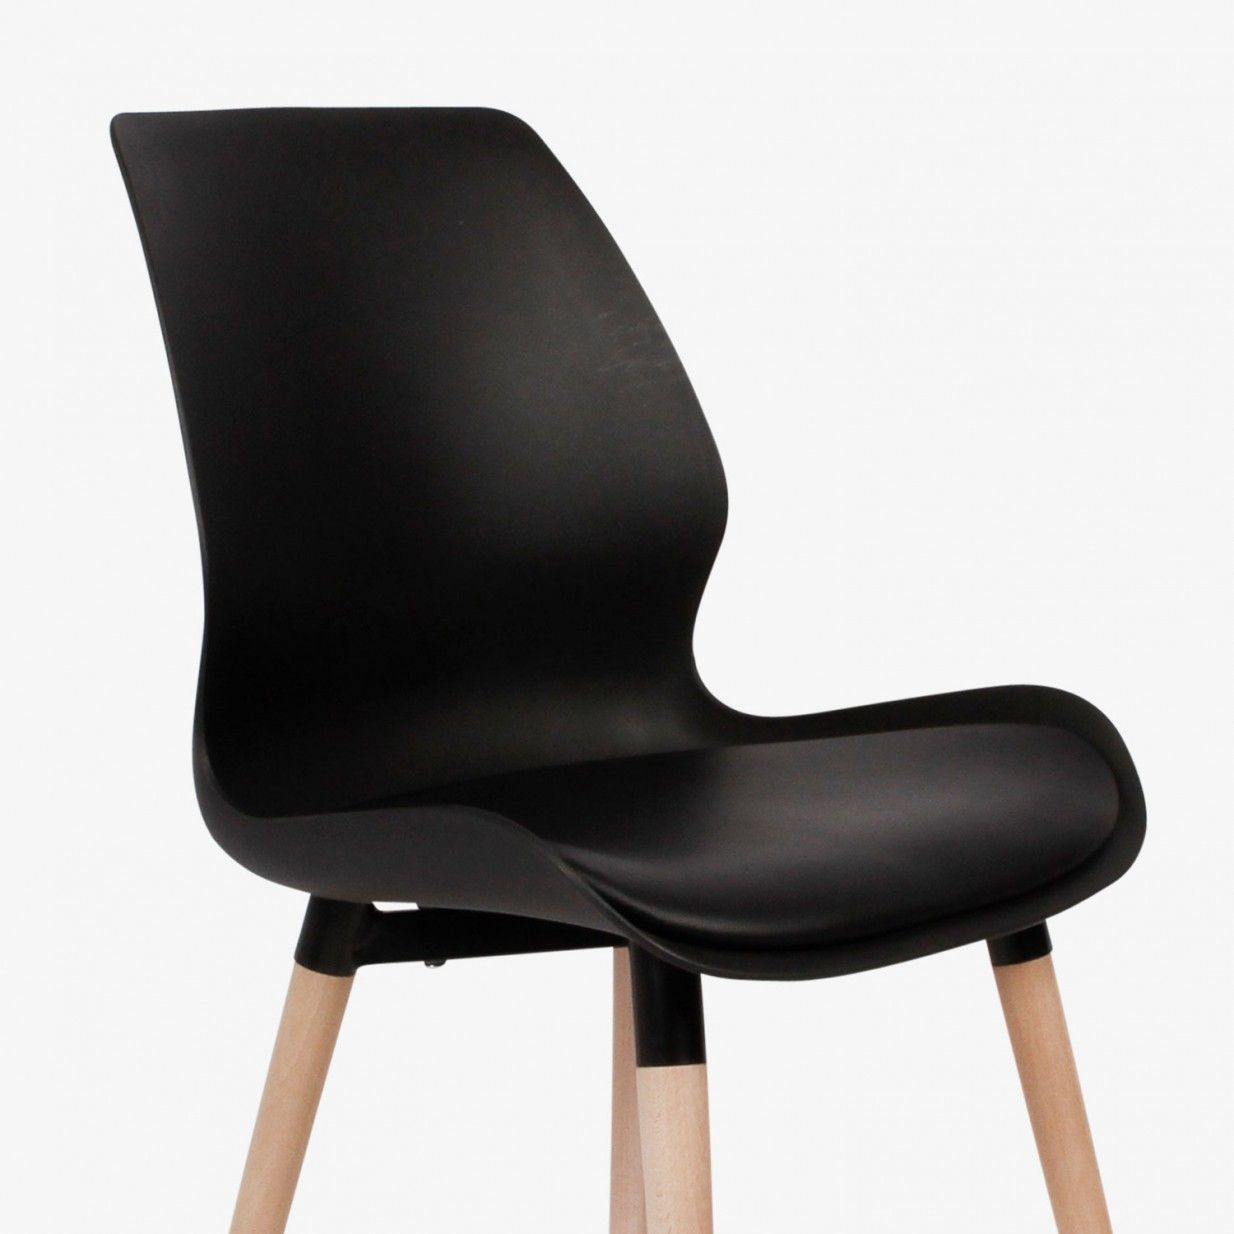 Set of 2 Nemo Chairs Black Preform Dining chairs